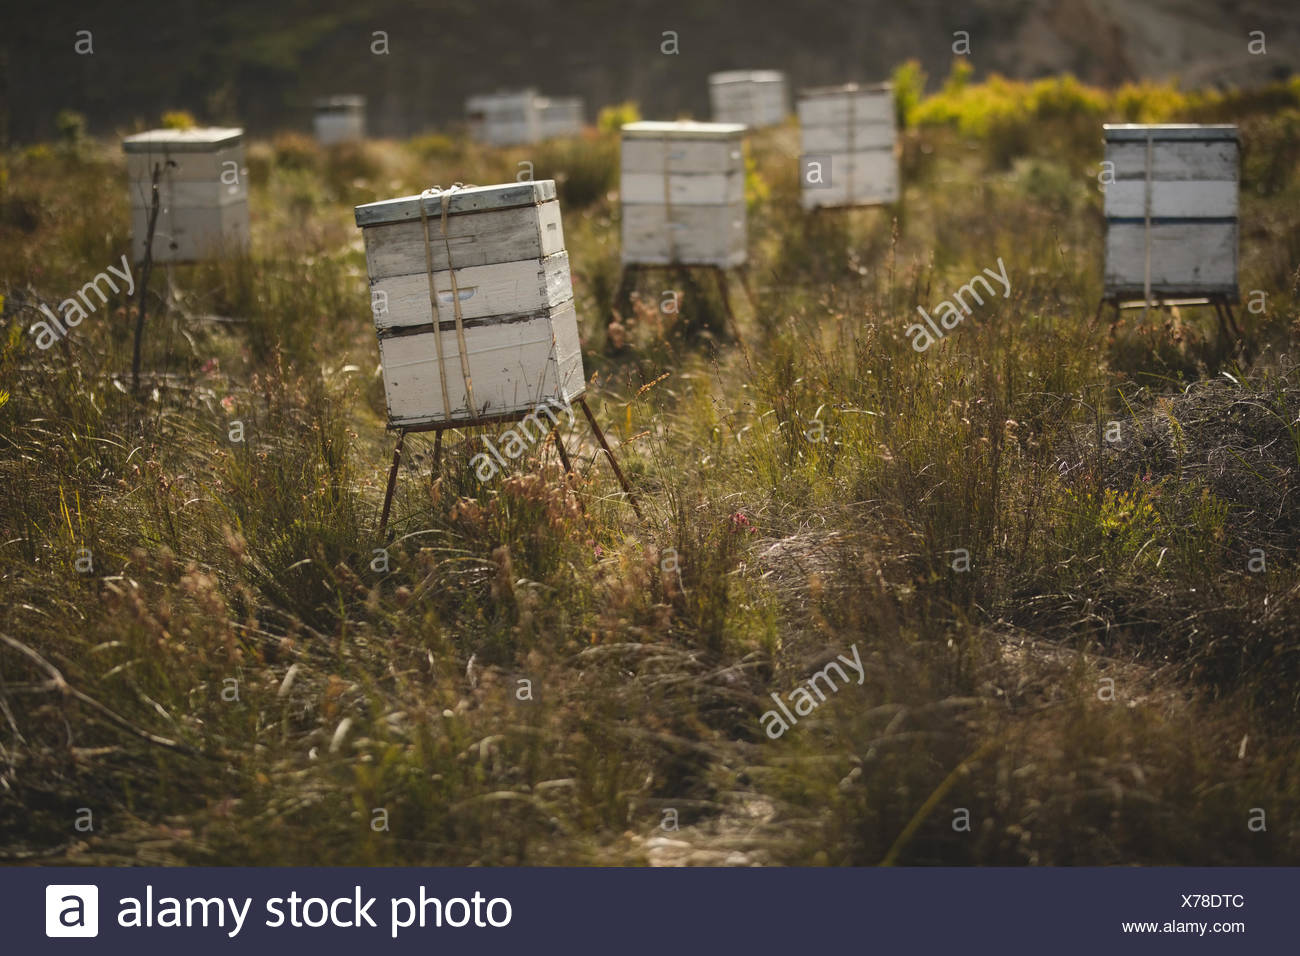 Beehives on grassy field at apiary - Stock Image